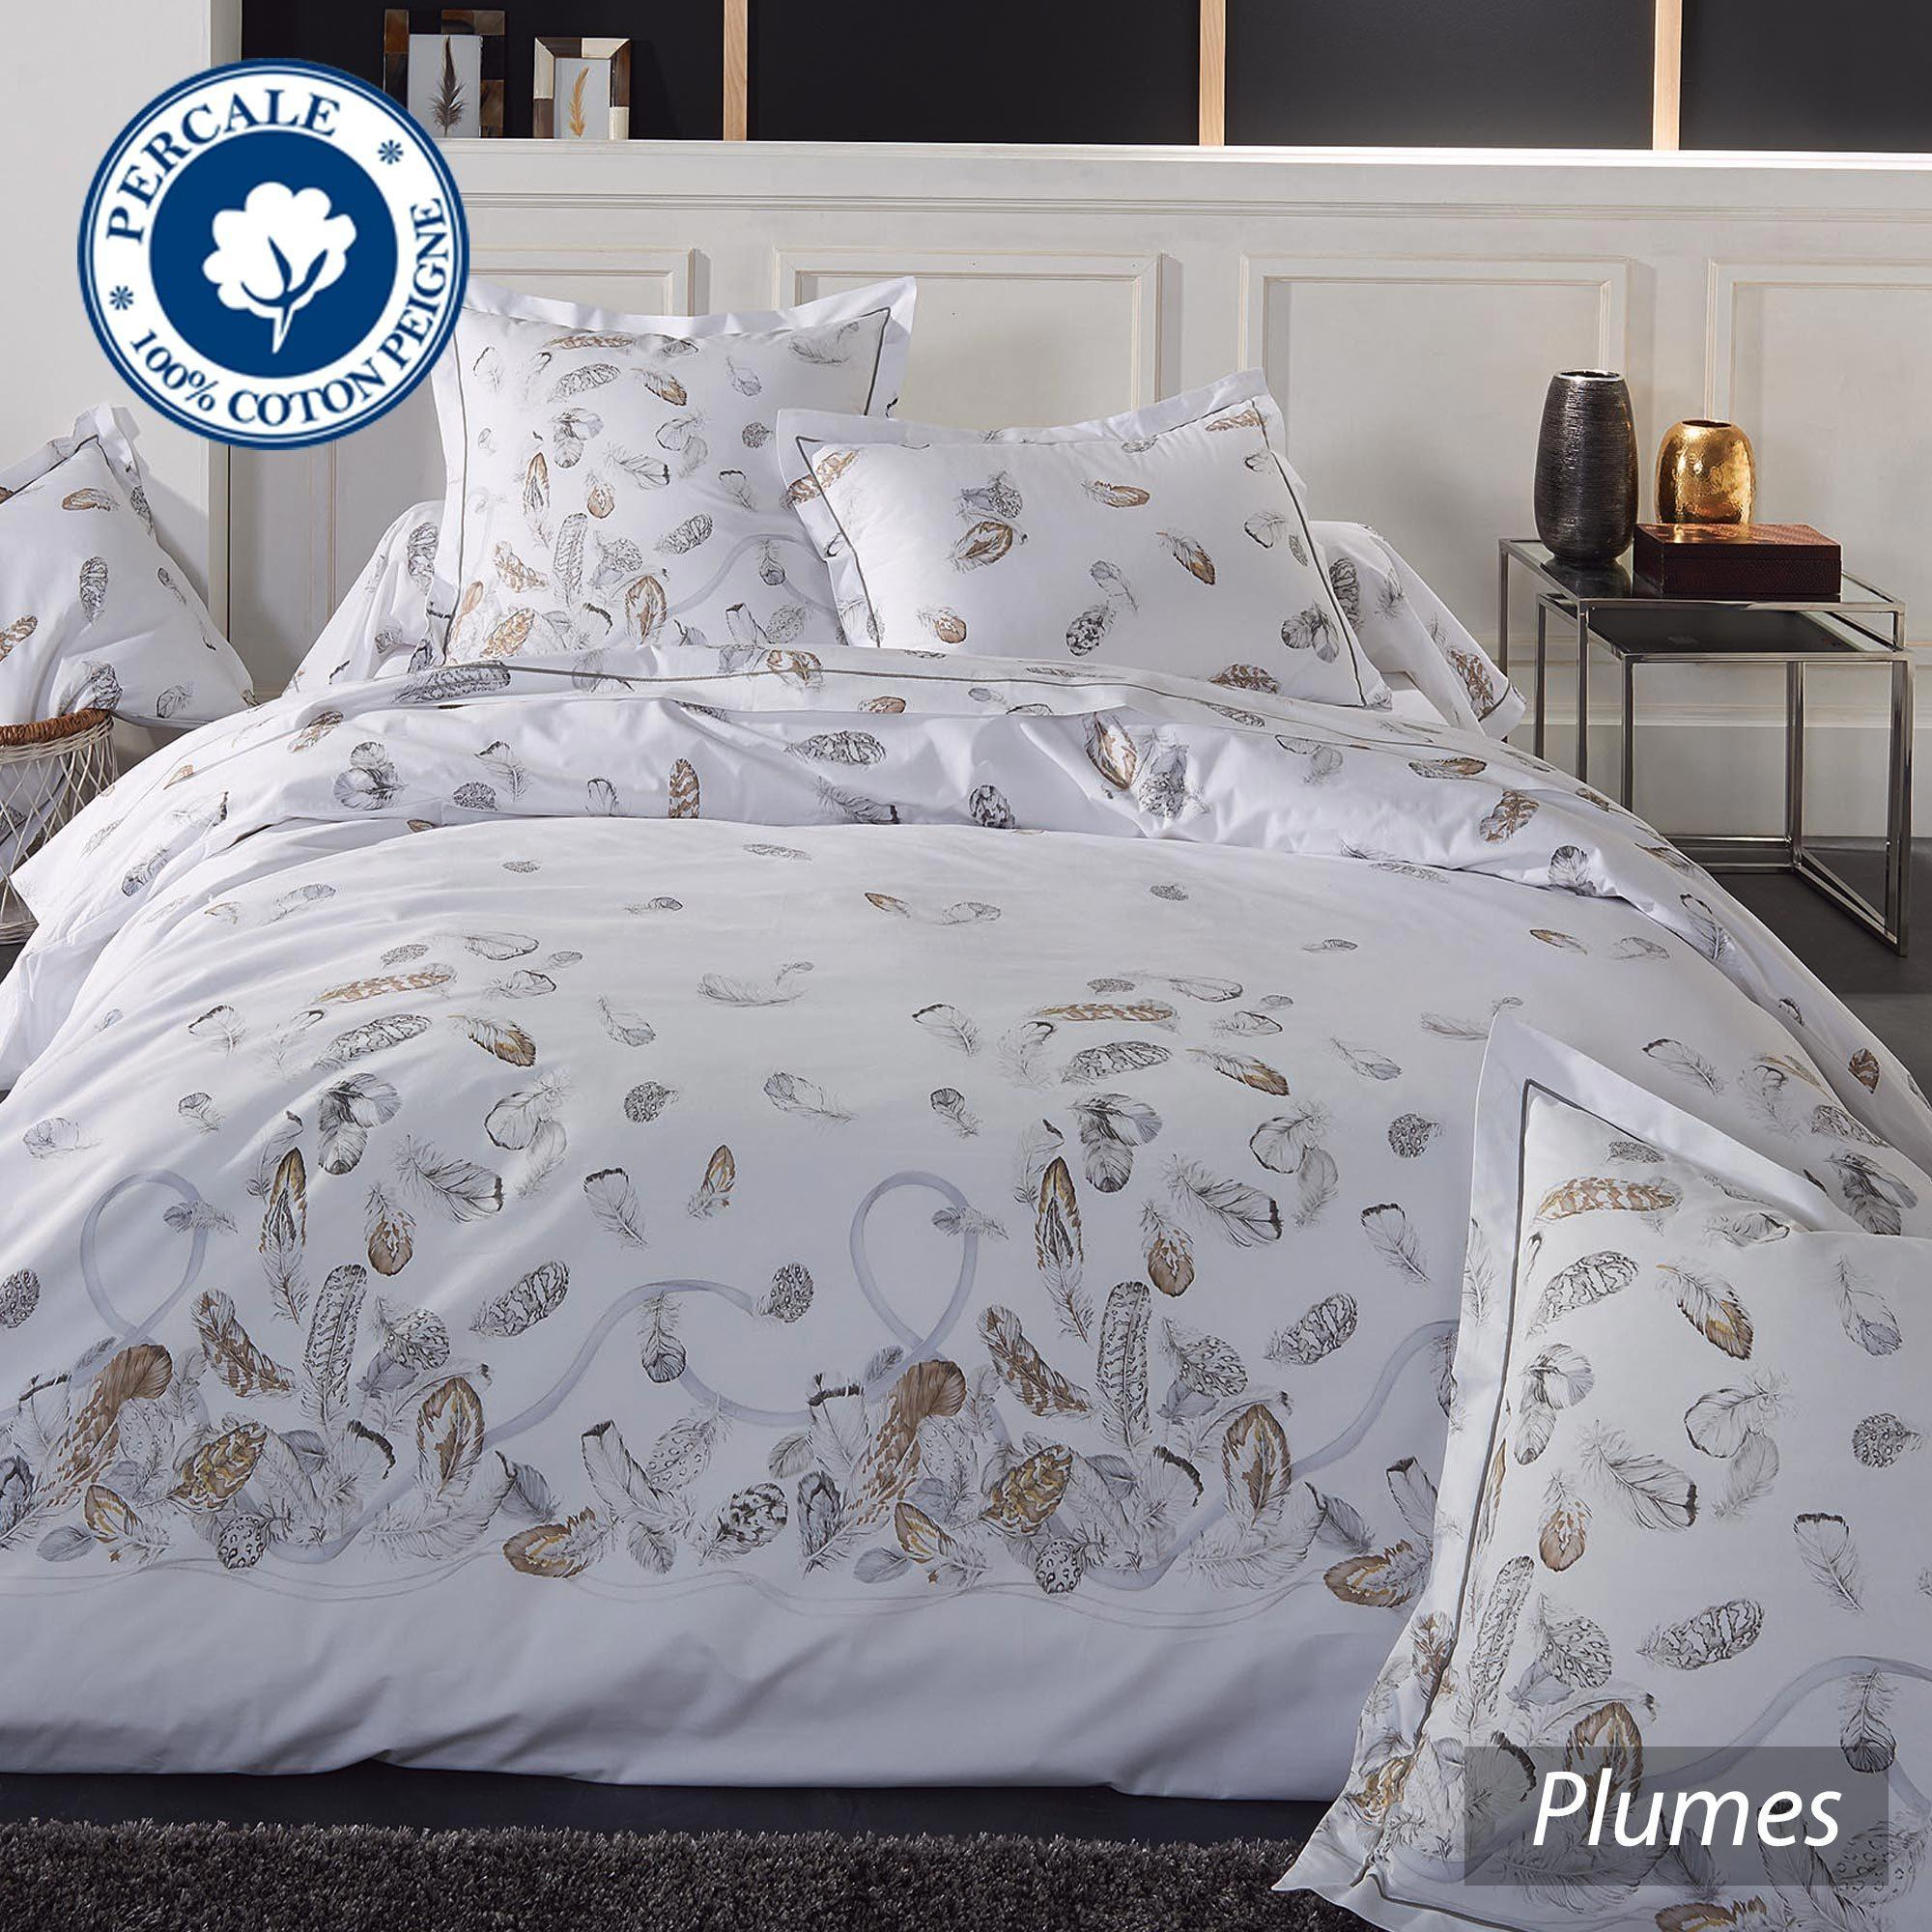 parure de lit percale pur coton peign 240x220 cm plumes. Black Bedroom Furniture Sets. Home Design Ideas